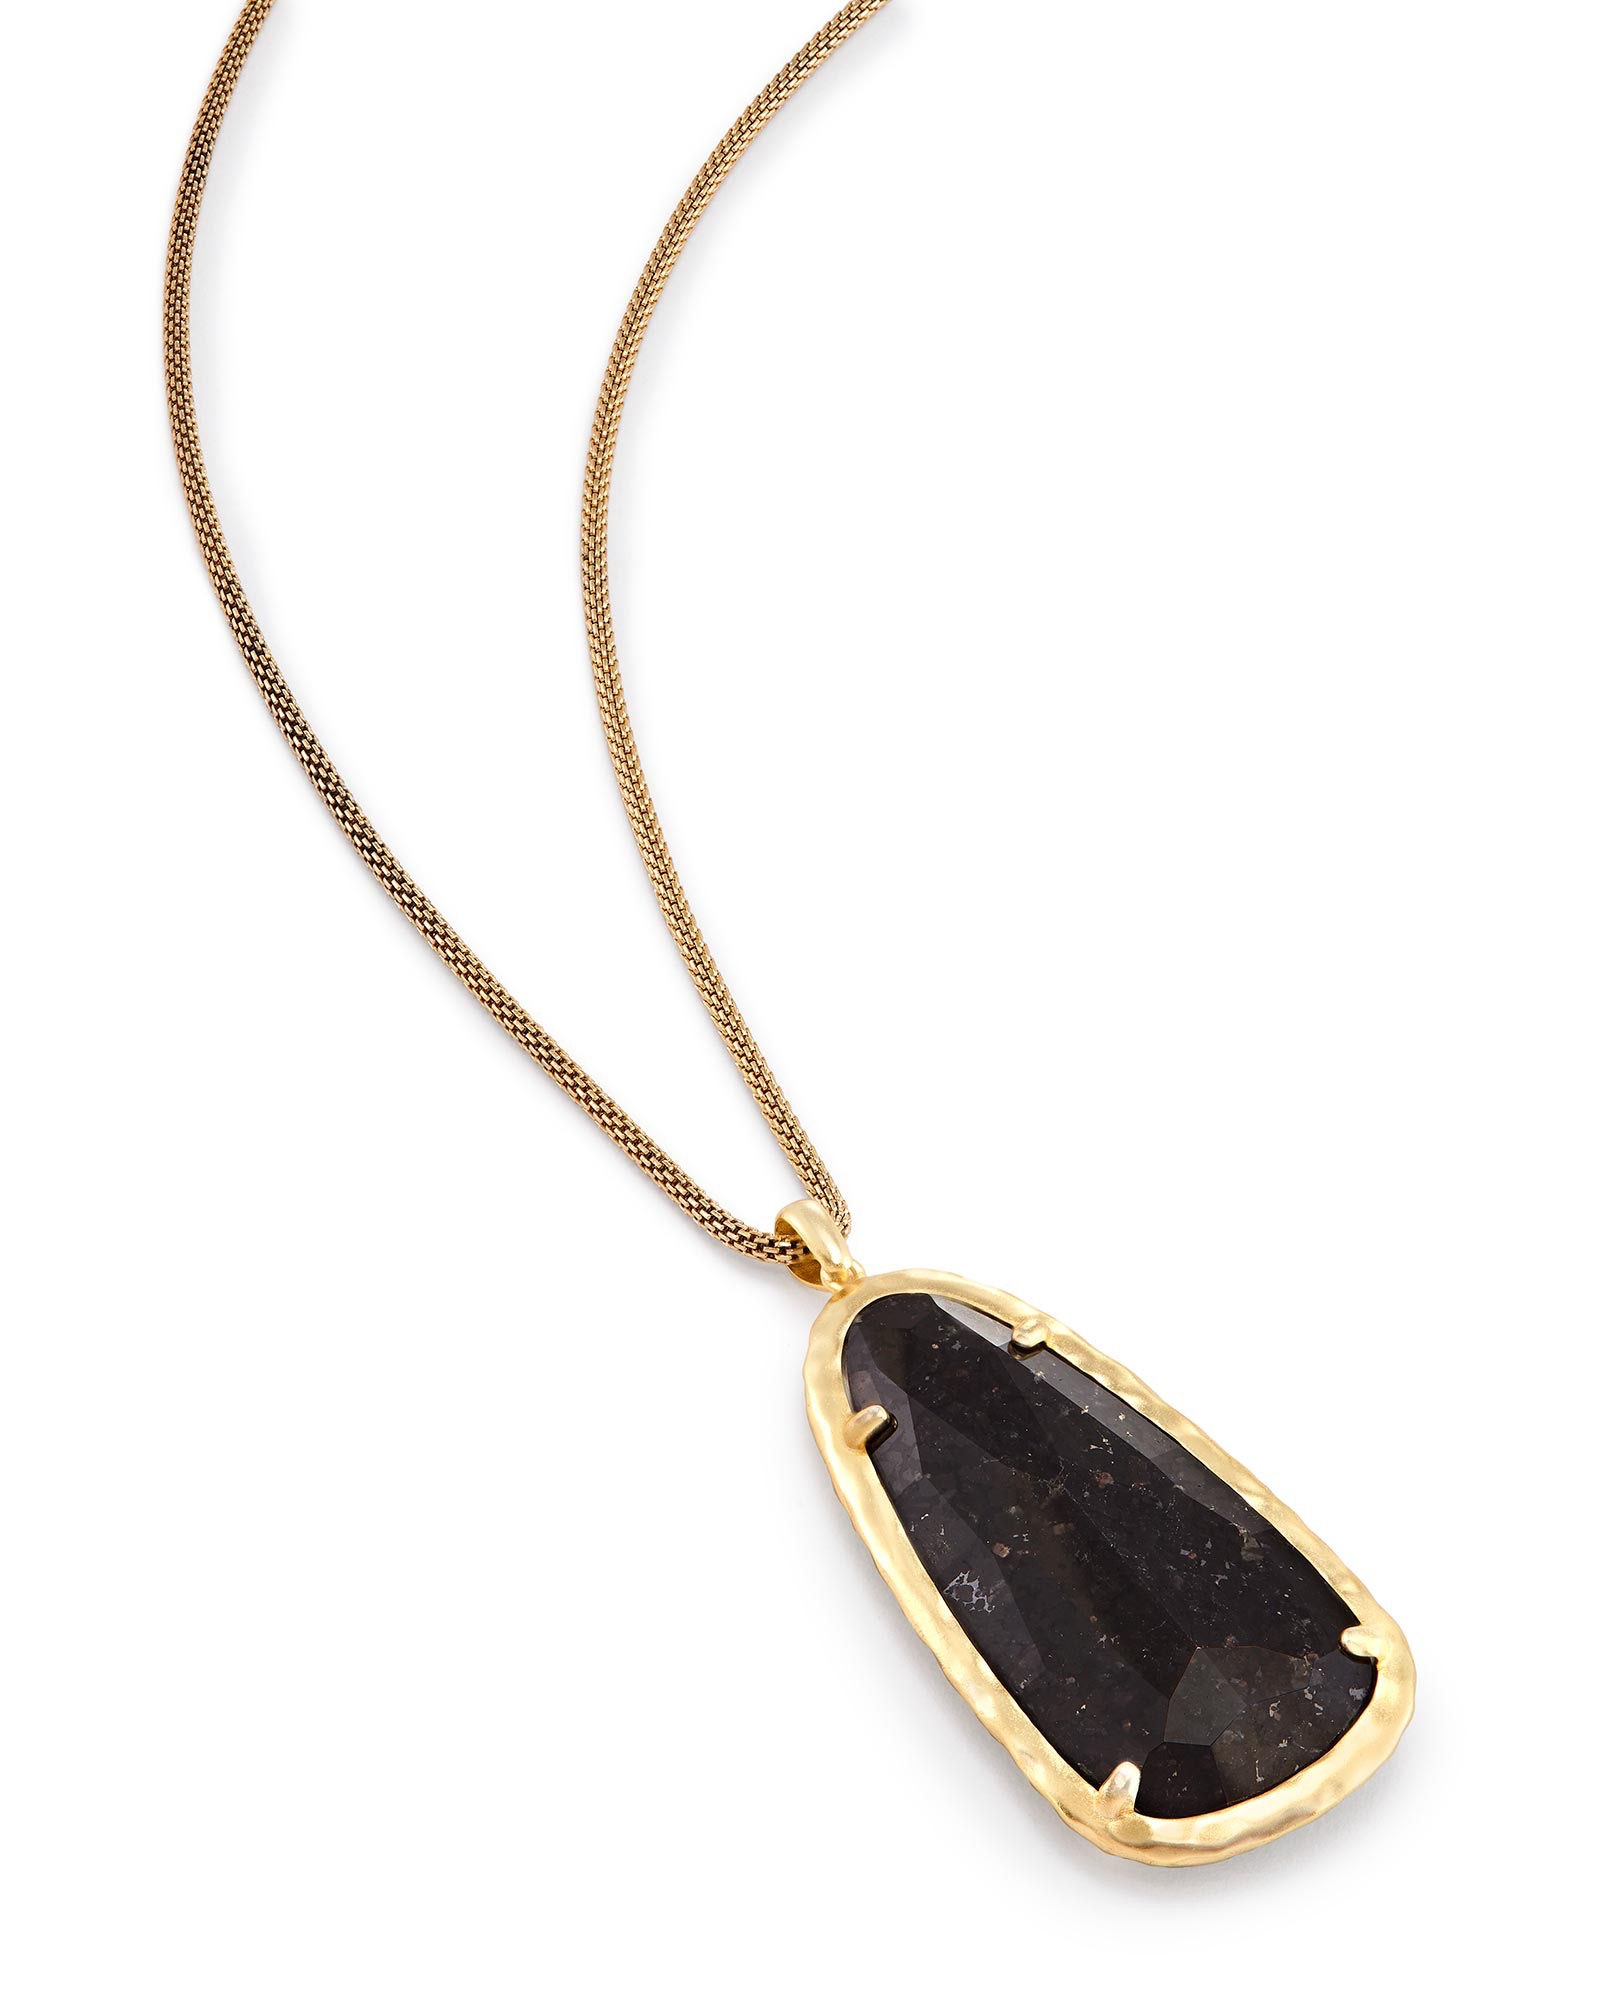 Saylor Long Pendant Necklace